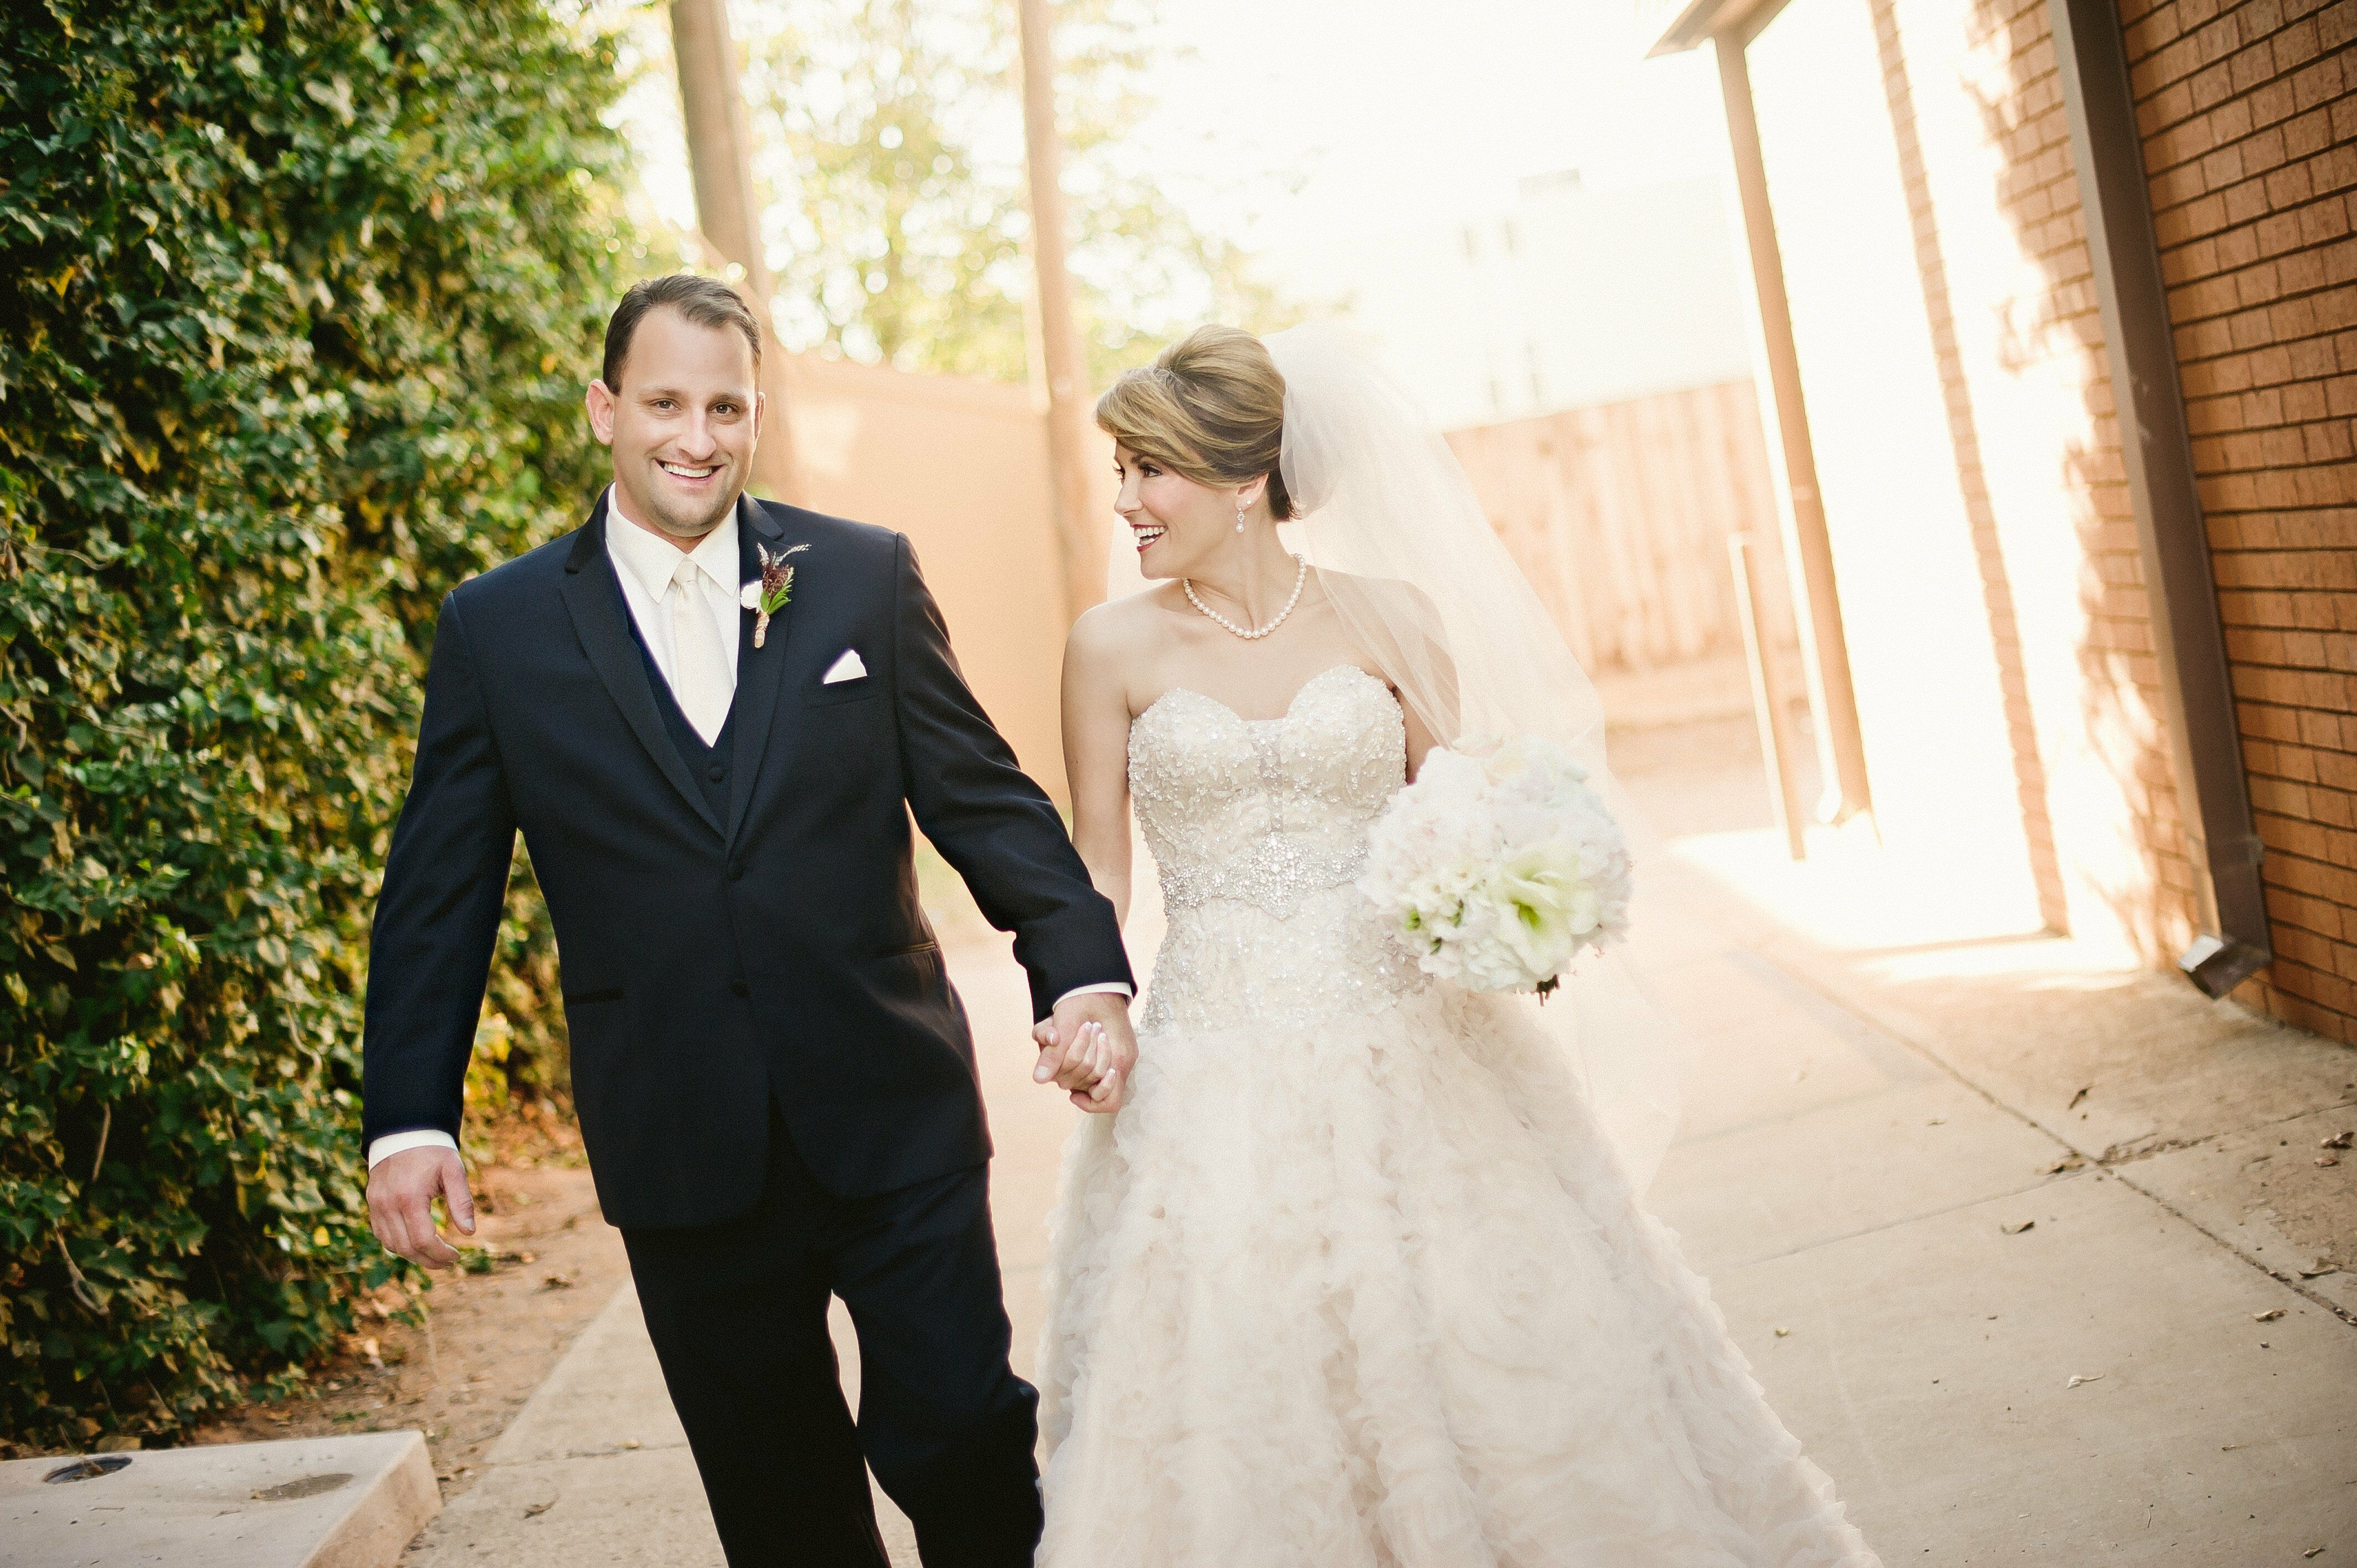 A legacy event center wedding in lubbock texas for Wedding dresses lubbock